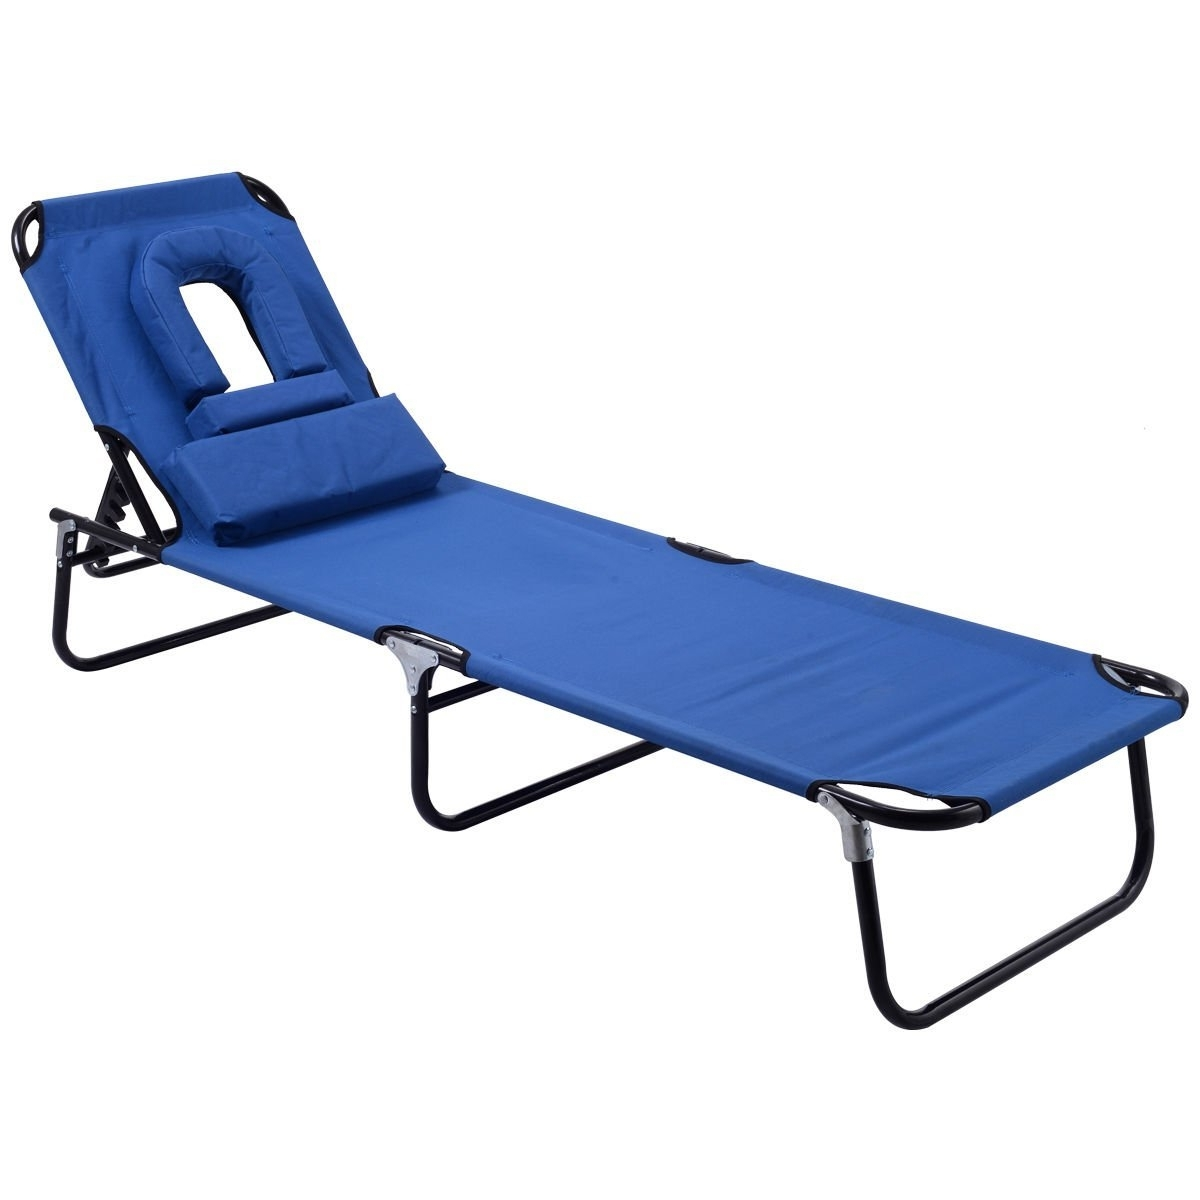 Well Known Chaise Lounge Sun Chairs Pertaining To Amazon: Goplus Folding Chaise Lounge Chair Bed Outdoor Patio (View 14 of 15)